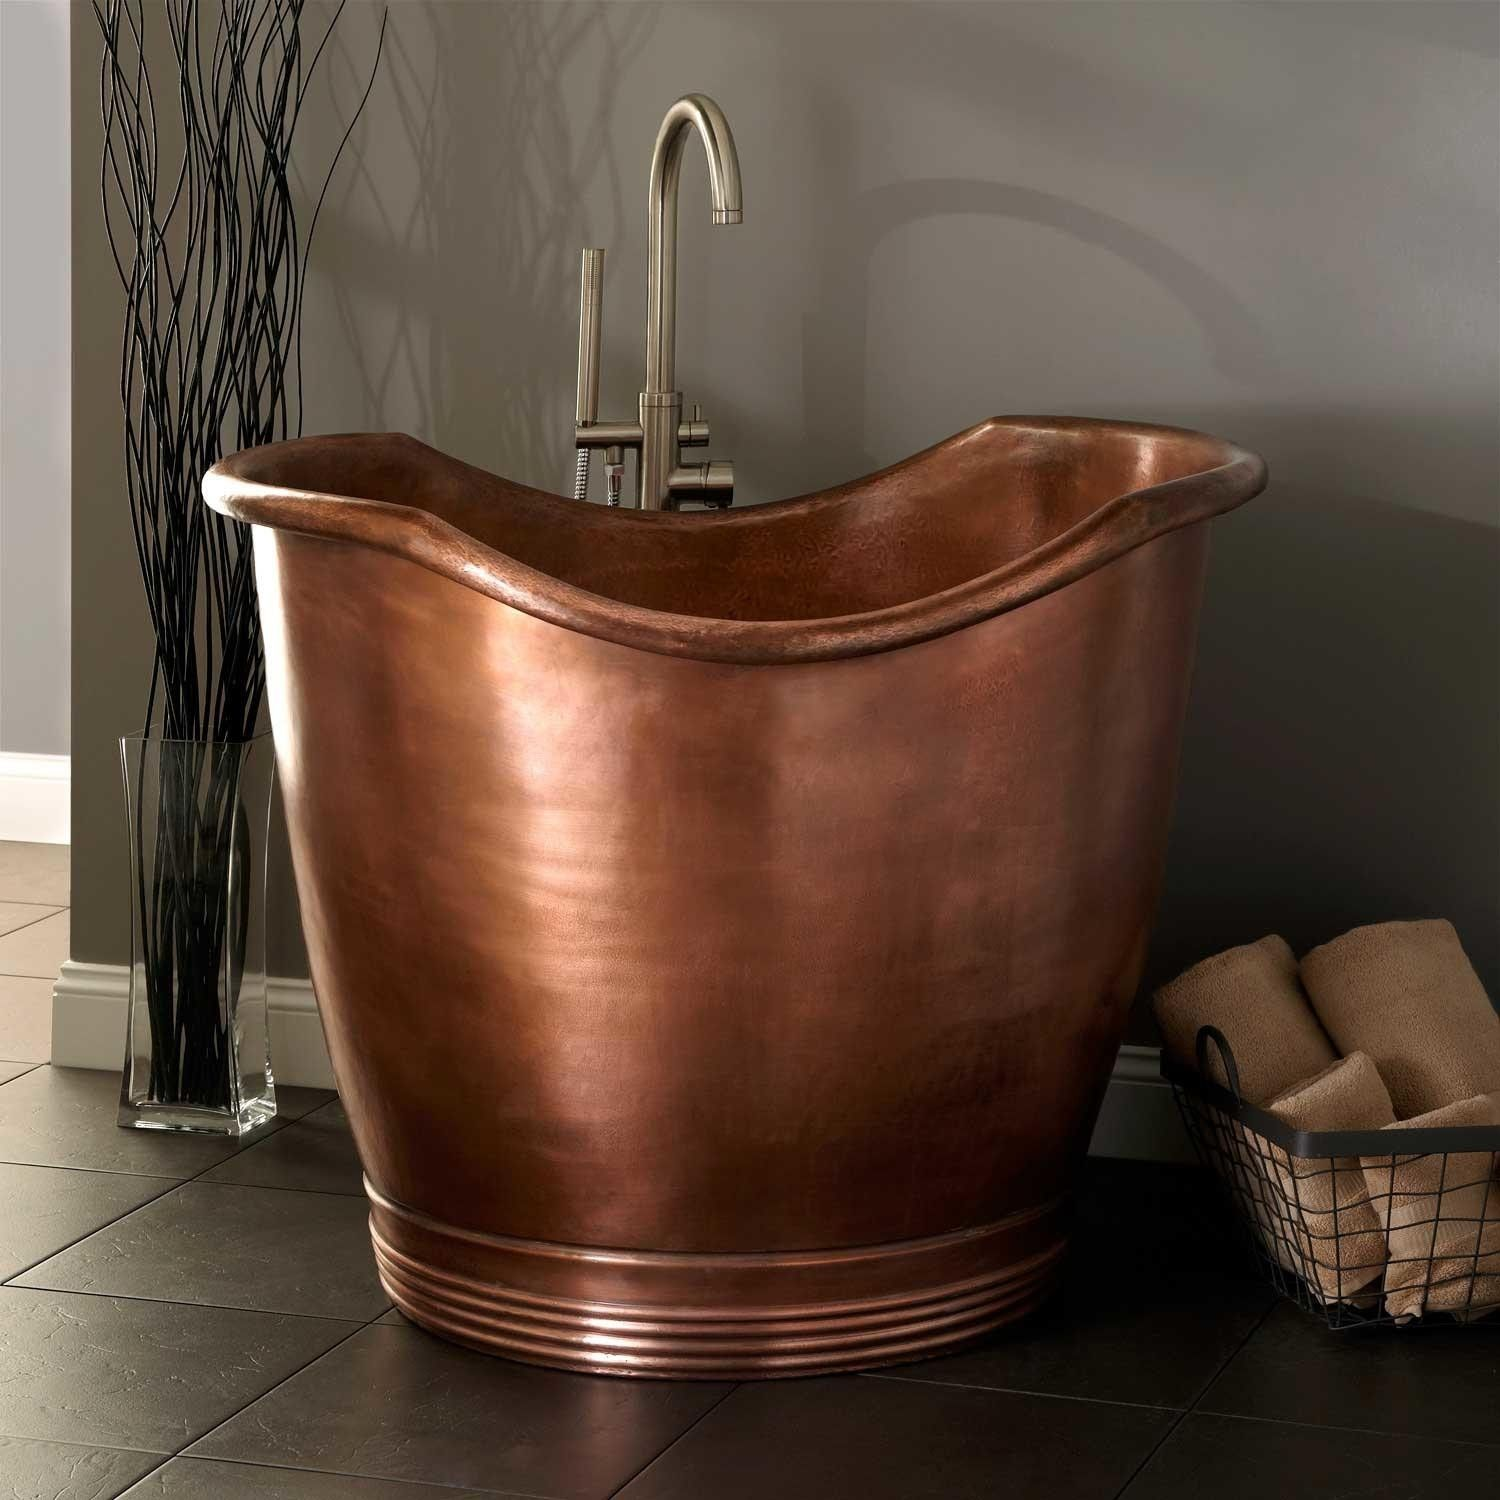 Small Bathtubs Tiny Bath Tub Sizes ElleDecorcom - Clawfoot tub in small bathroom